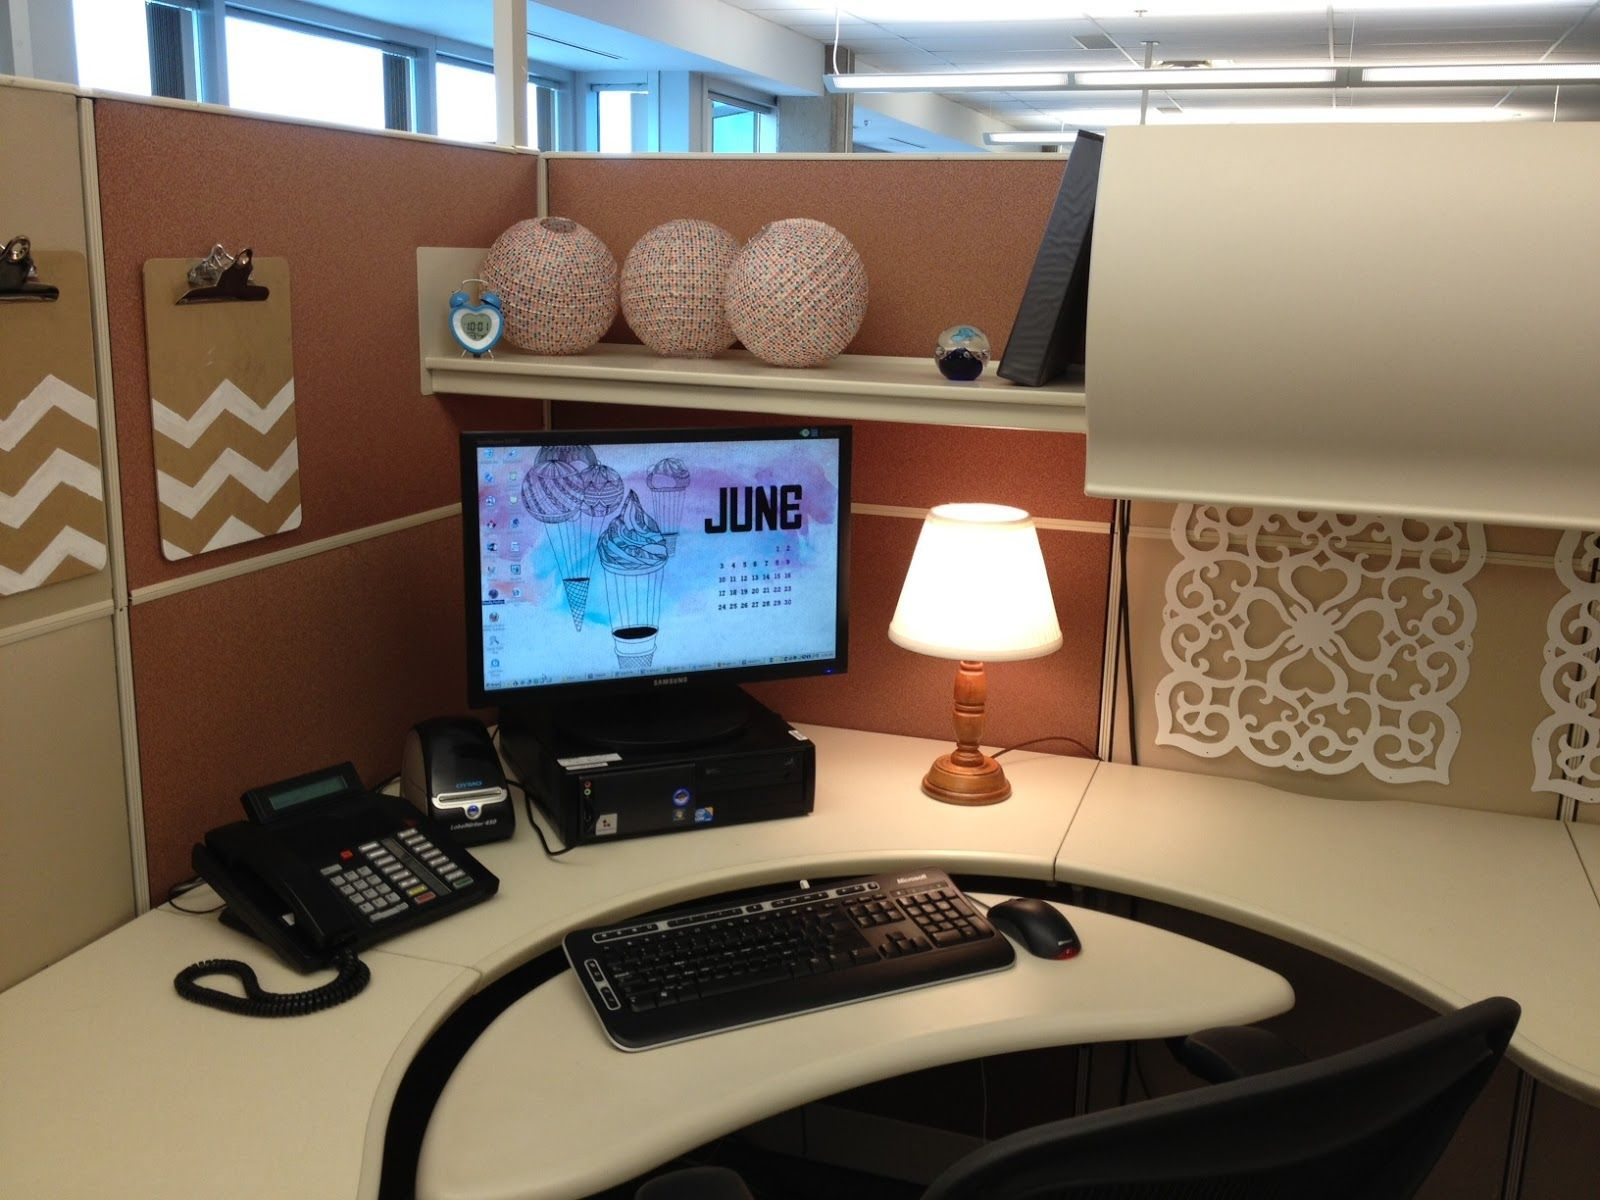 Cubicle Decorating Ideas Enchanting 20 Cubicle Decor Ideas To Make Your Office Style Work As Hard As Decorating Inspiration